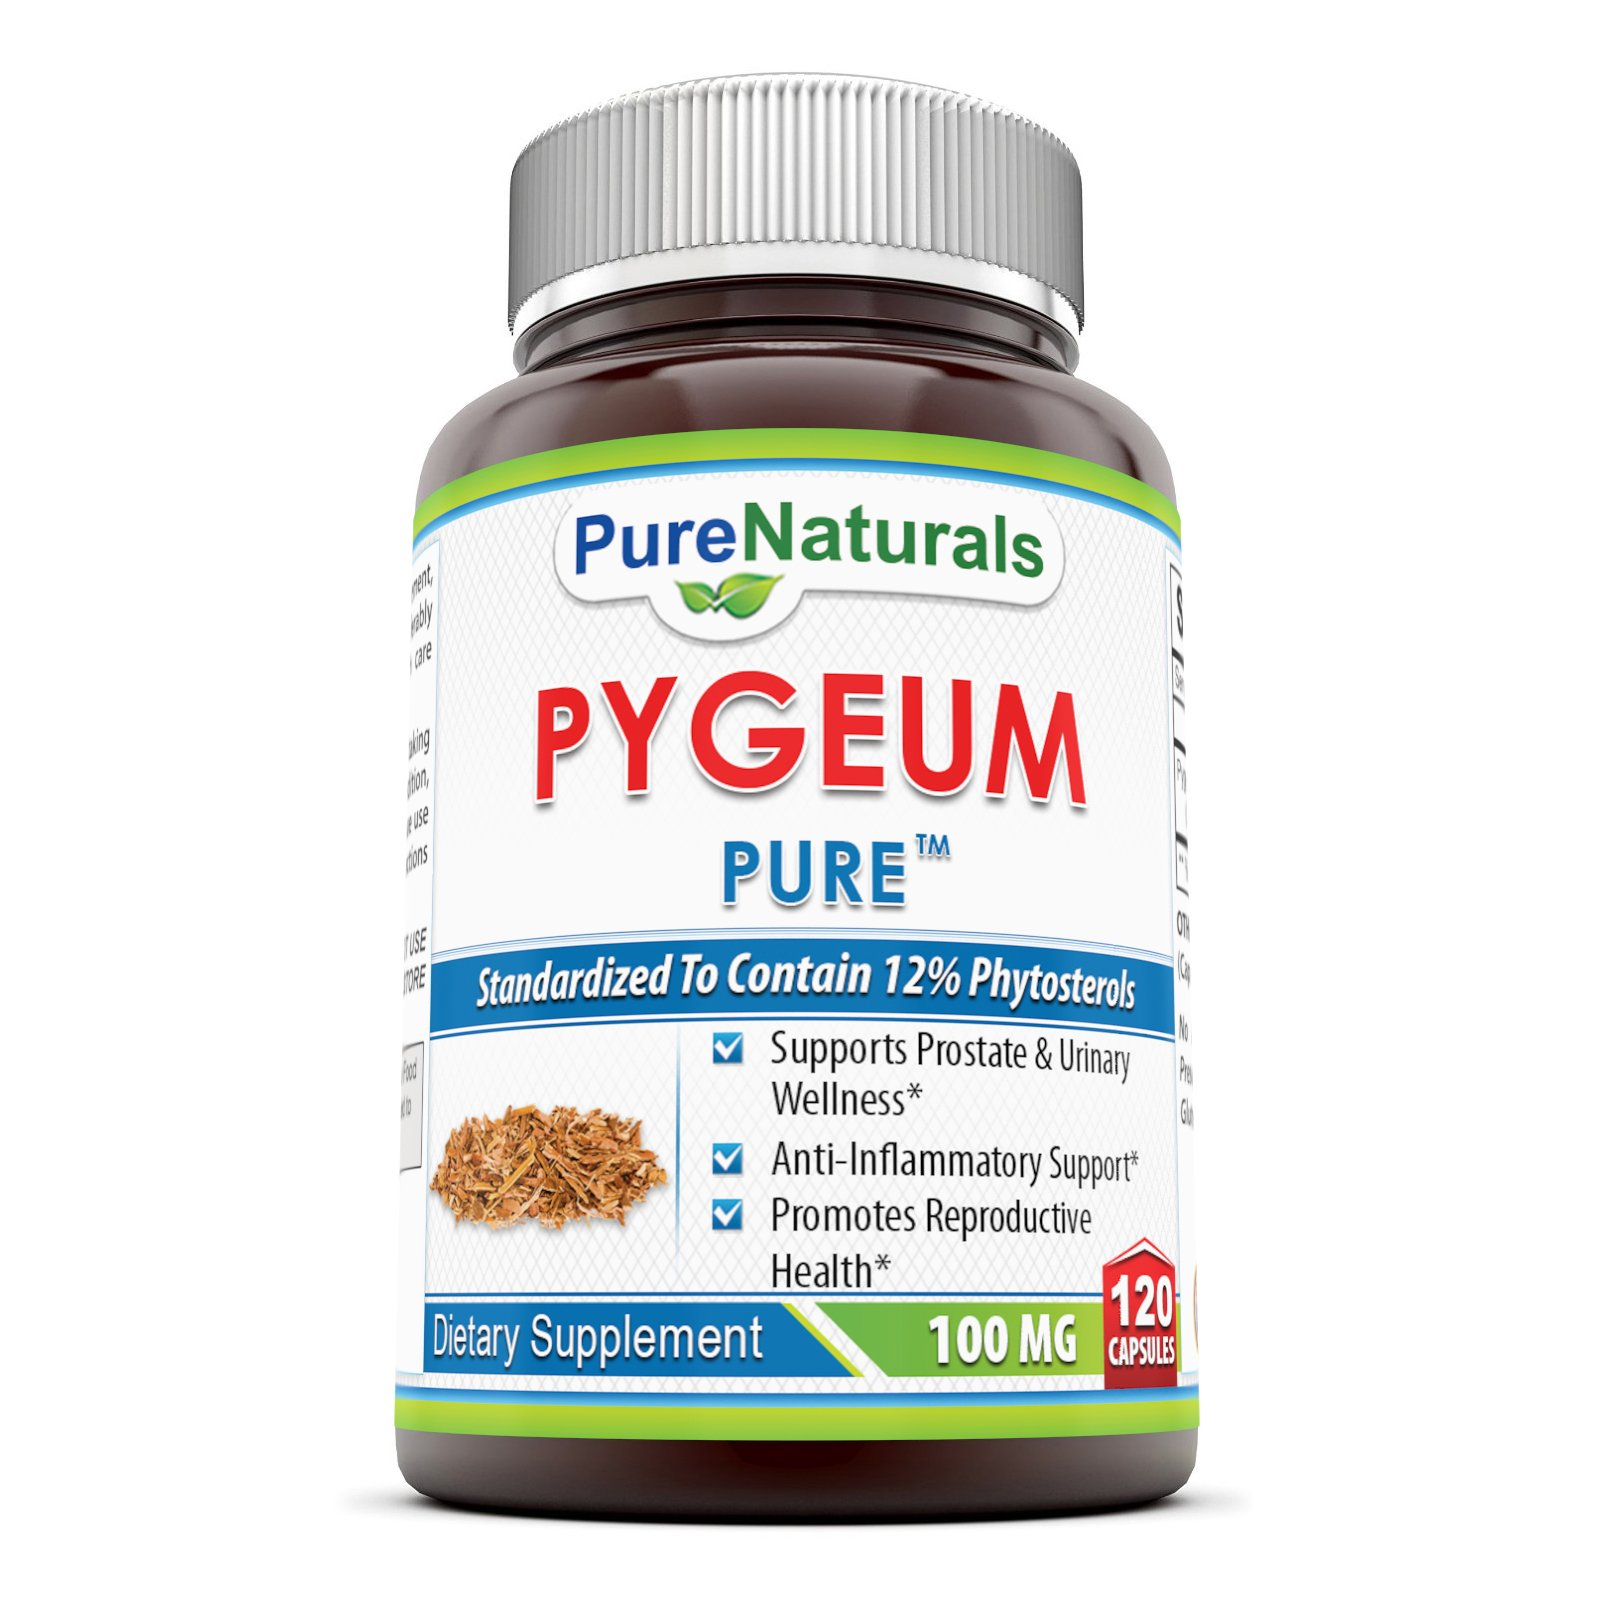 Pure Naturals Pygeum Extract 100 Mg, 120 Count